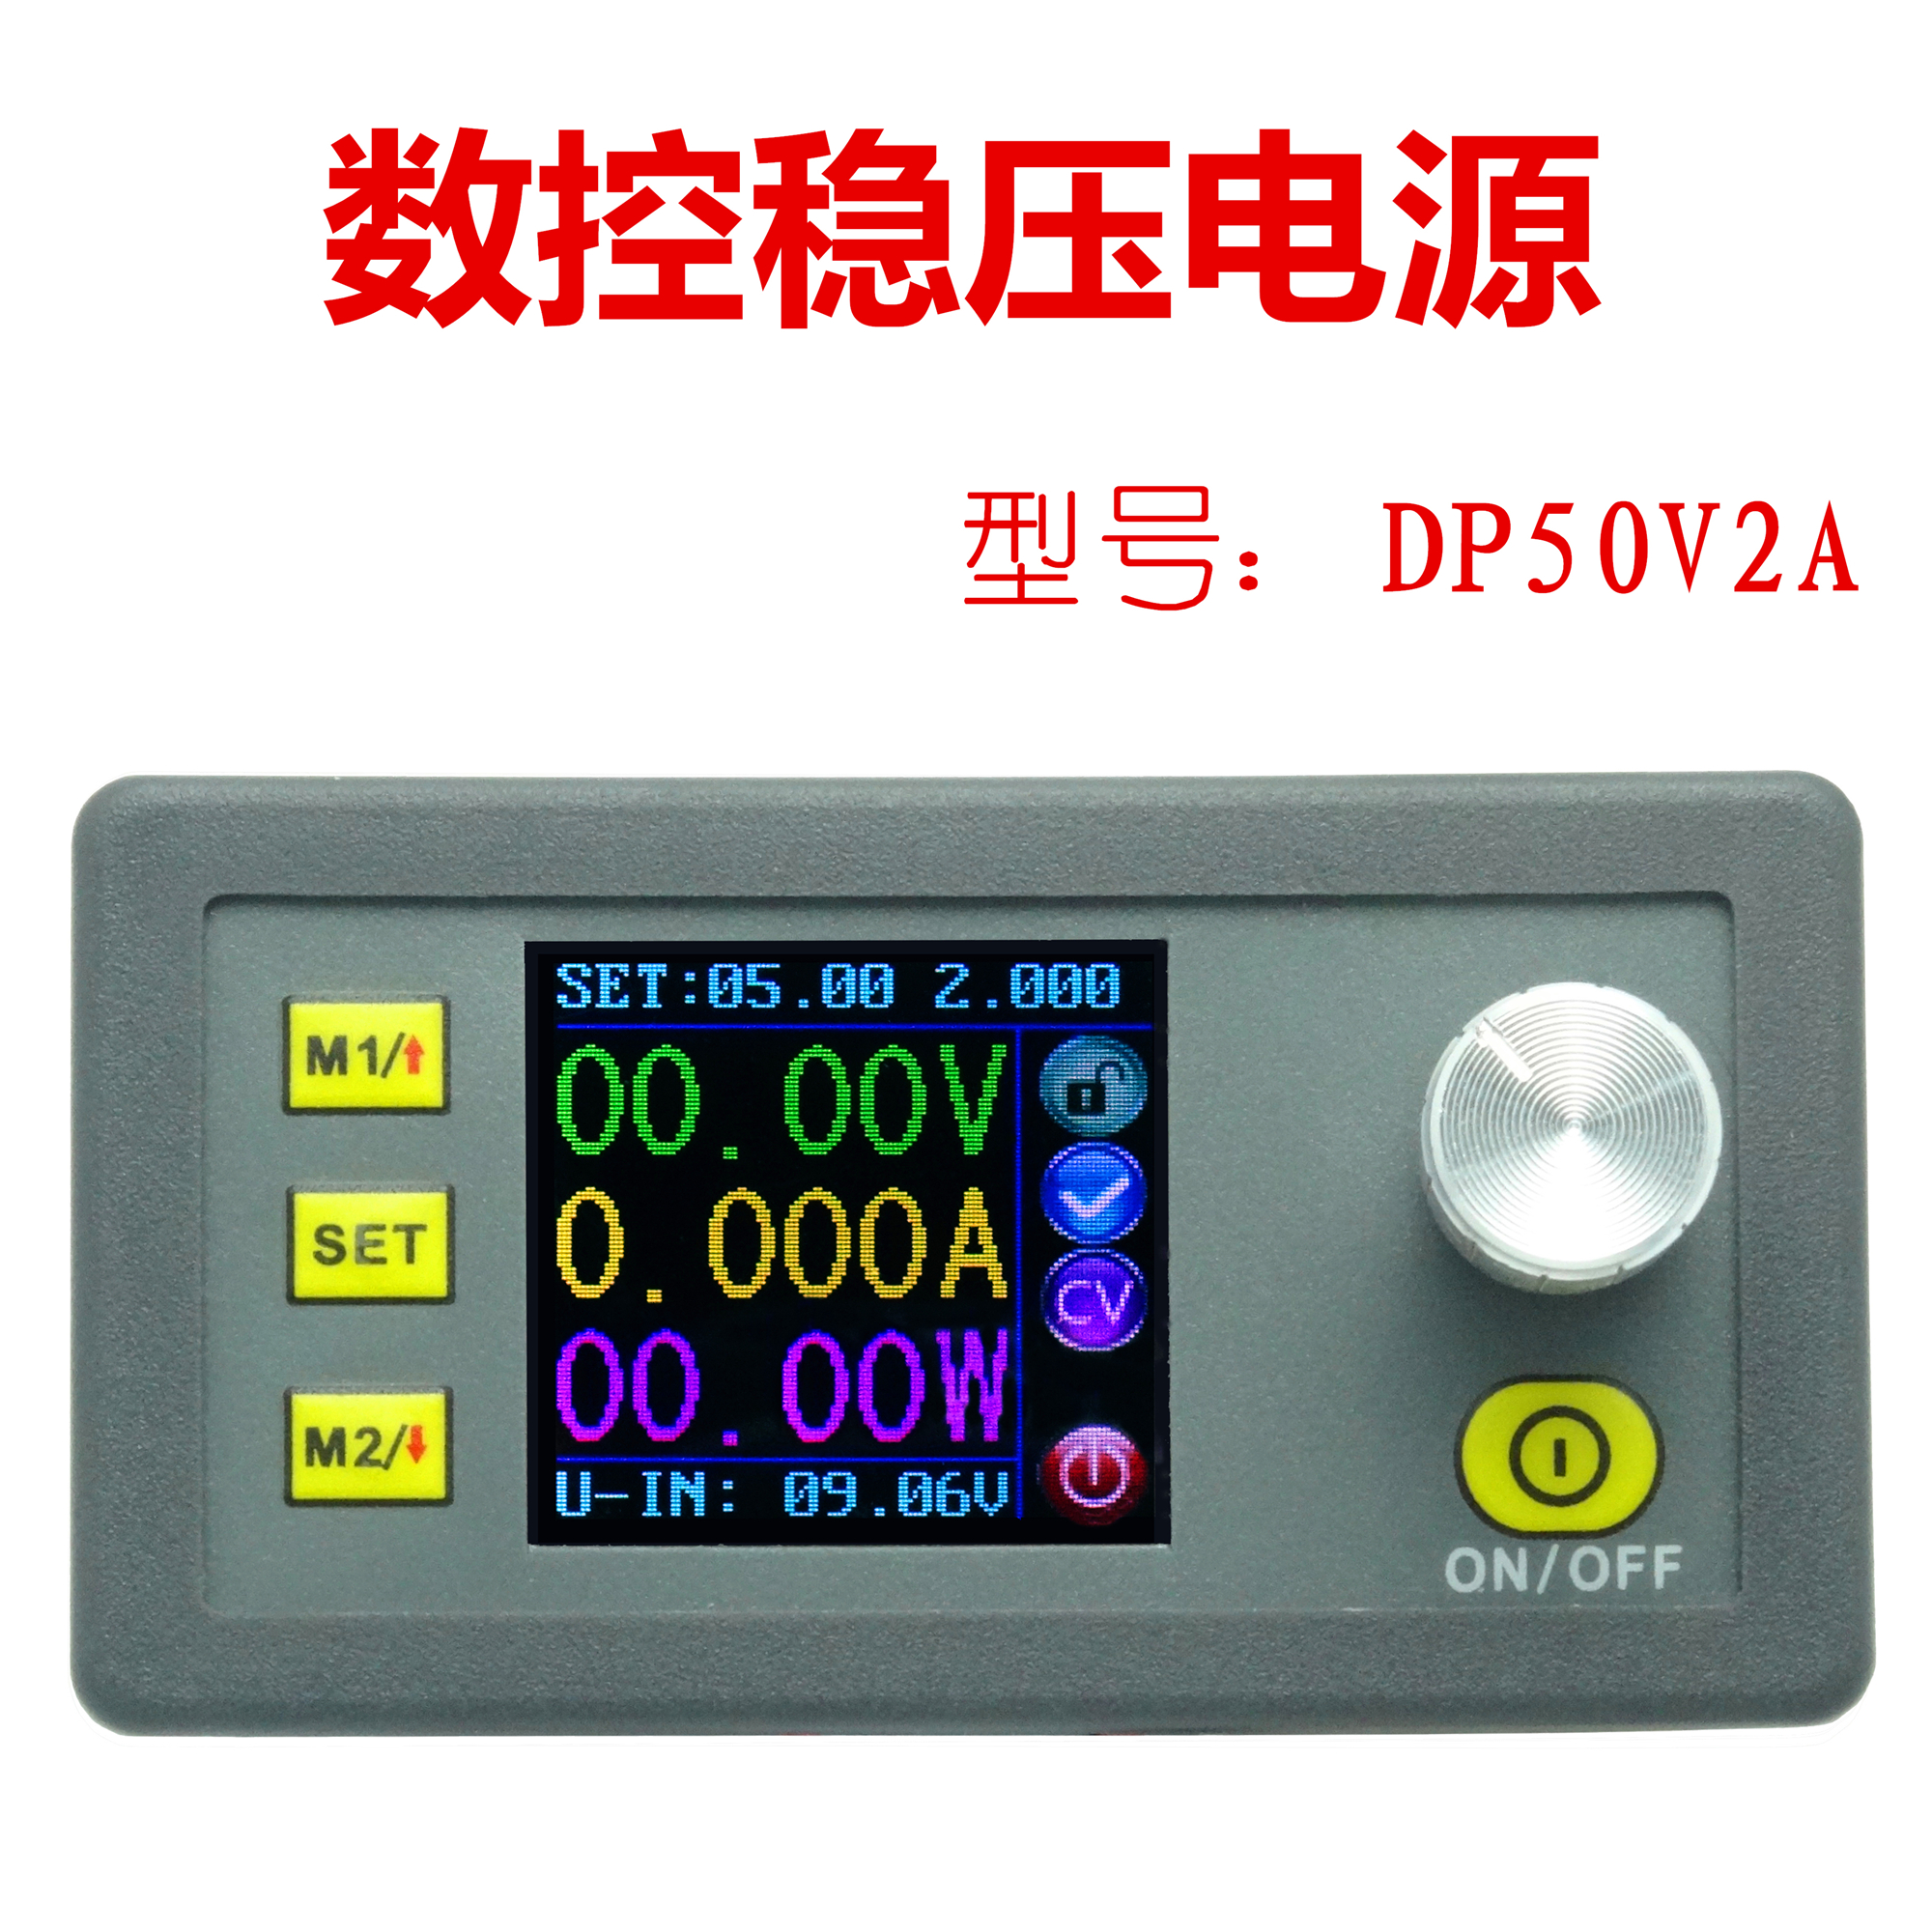 DP30V5A NC DC power adjustable step-down module integrated voltmeter ammeter display diy kit dc dc adjustable step down regulated power supply module belt voltmeter ammeter dual display